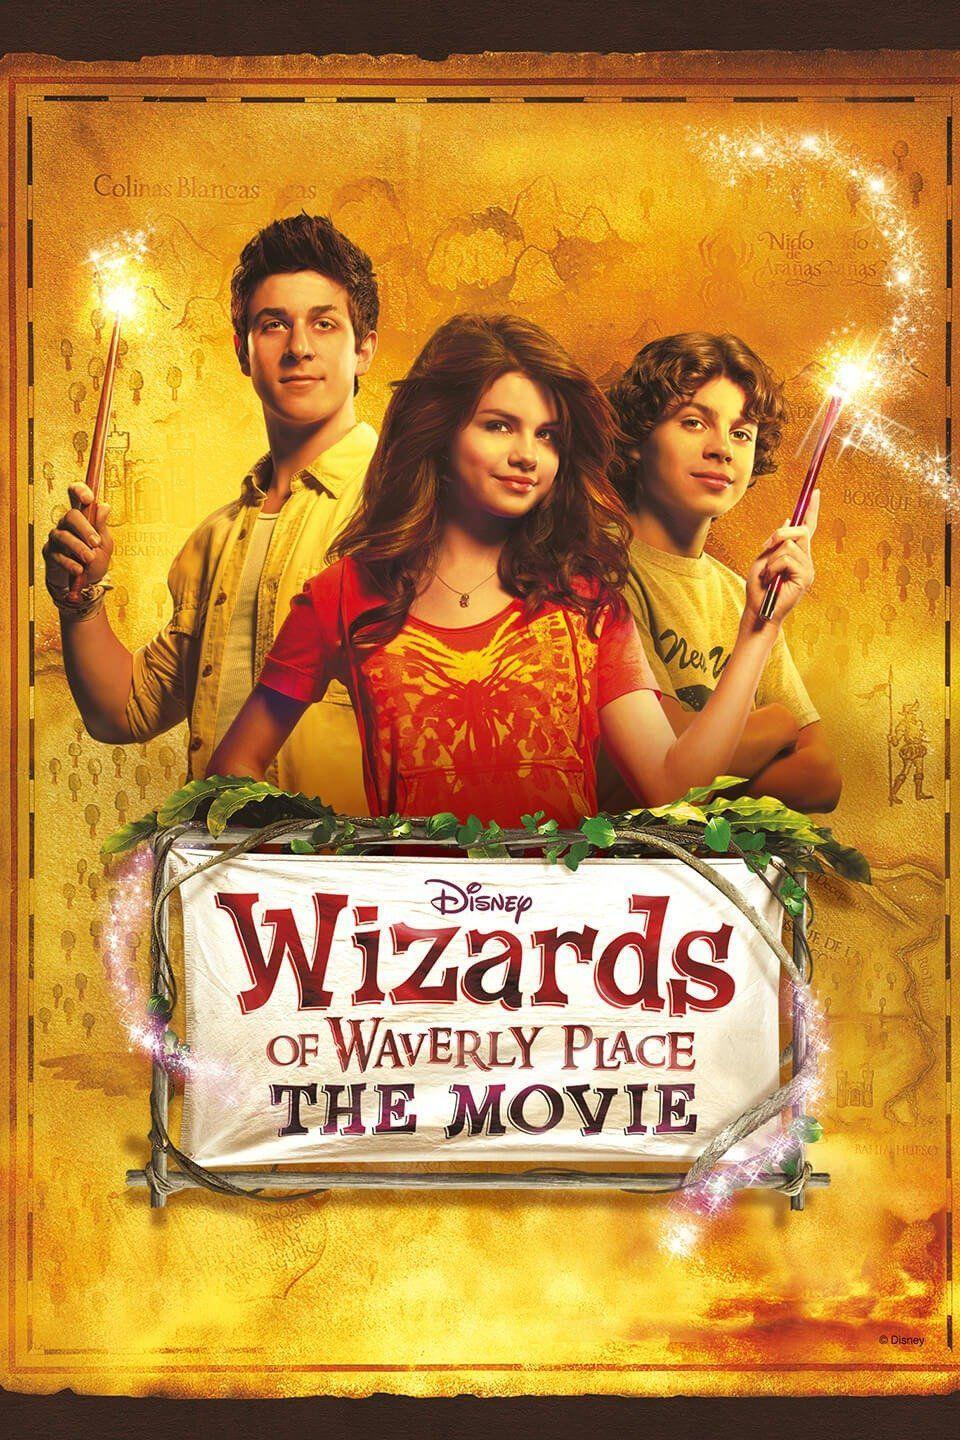 """<p>Because Halloween is filled with wizards and magic, this movie based on the popular Disney show is an entertaining pick. Alex (played by Selena Gomez) learns the truth in the phrase """"be careful what you wish for"""" when her family's destiny is threatened.</p><p>Watch more from Alex in <a href=""""https://go.redirectingat.com?id=74968X1596630&url=https%3A%2F%2Fwww.disneyplus.com%2Fmovies%2Fthe-wizards-return-alex-vs-alex%2F3WDgR5TT0jUu&sref=https%3A%2F%2Fwww.countryliving.com%2Flife%2Fentertainment%2Fg32748070%2Fdisney-plus-halloween-movies%2F"""" rel=""""nofollow noopener"""" target=""""_blank"""" data-ylk=""""slk:The Wizards Return: Alex Vs Alex"""" class=""""link rapid-noclick-resp"""">The Wizards Return: Alex Vs Alex</a>.</p><p><a class=""""link rapid-noclick-resp"""" href=""""https://go.redirectingat.com?id=74968X1596630&url=https%3A%2F%2Fwww.disneyplus.com%2Fseries%2Fwizards-of-waverly-place%2F46LxeQLwj7nH&sref=https%3A%2F%2Fwww.countryliving.com%2Flife%2Fentertainment%2Fg32748070%2Fdisney-plus-halloween-movies%2F"""" rel=""""nofollow noopener"""" target=""""_blank"""" data-ylk=""""slk:WATCH NOW"""">WATCH NOW</a></p>"""